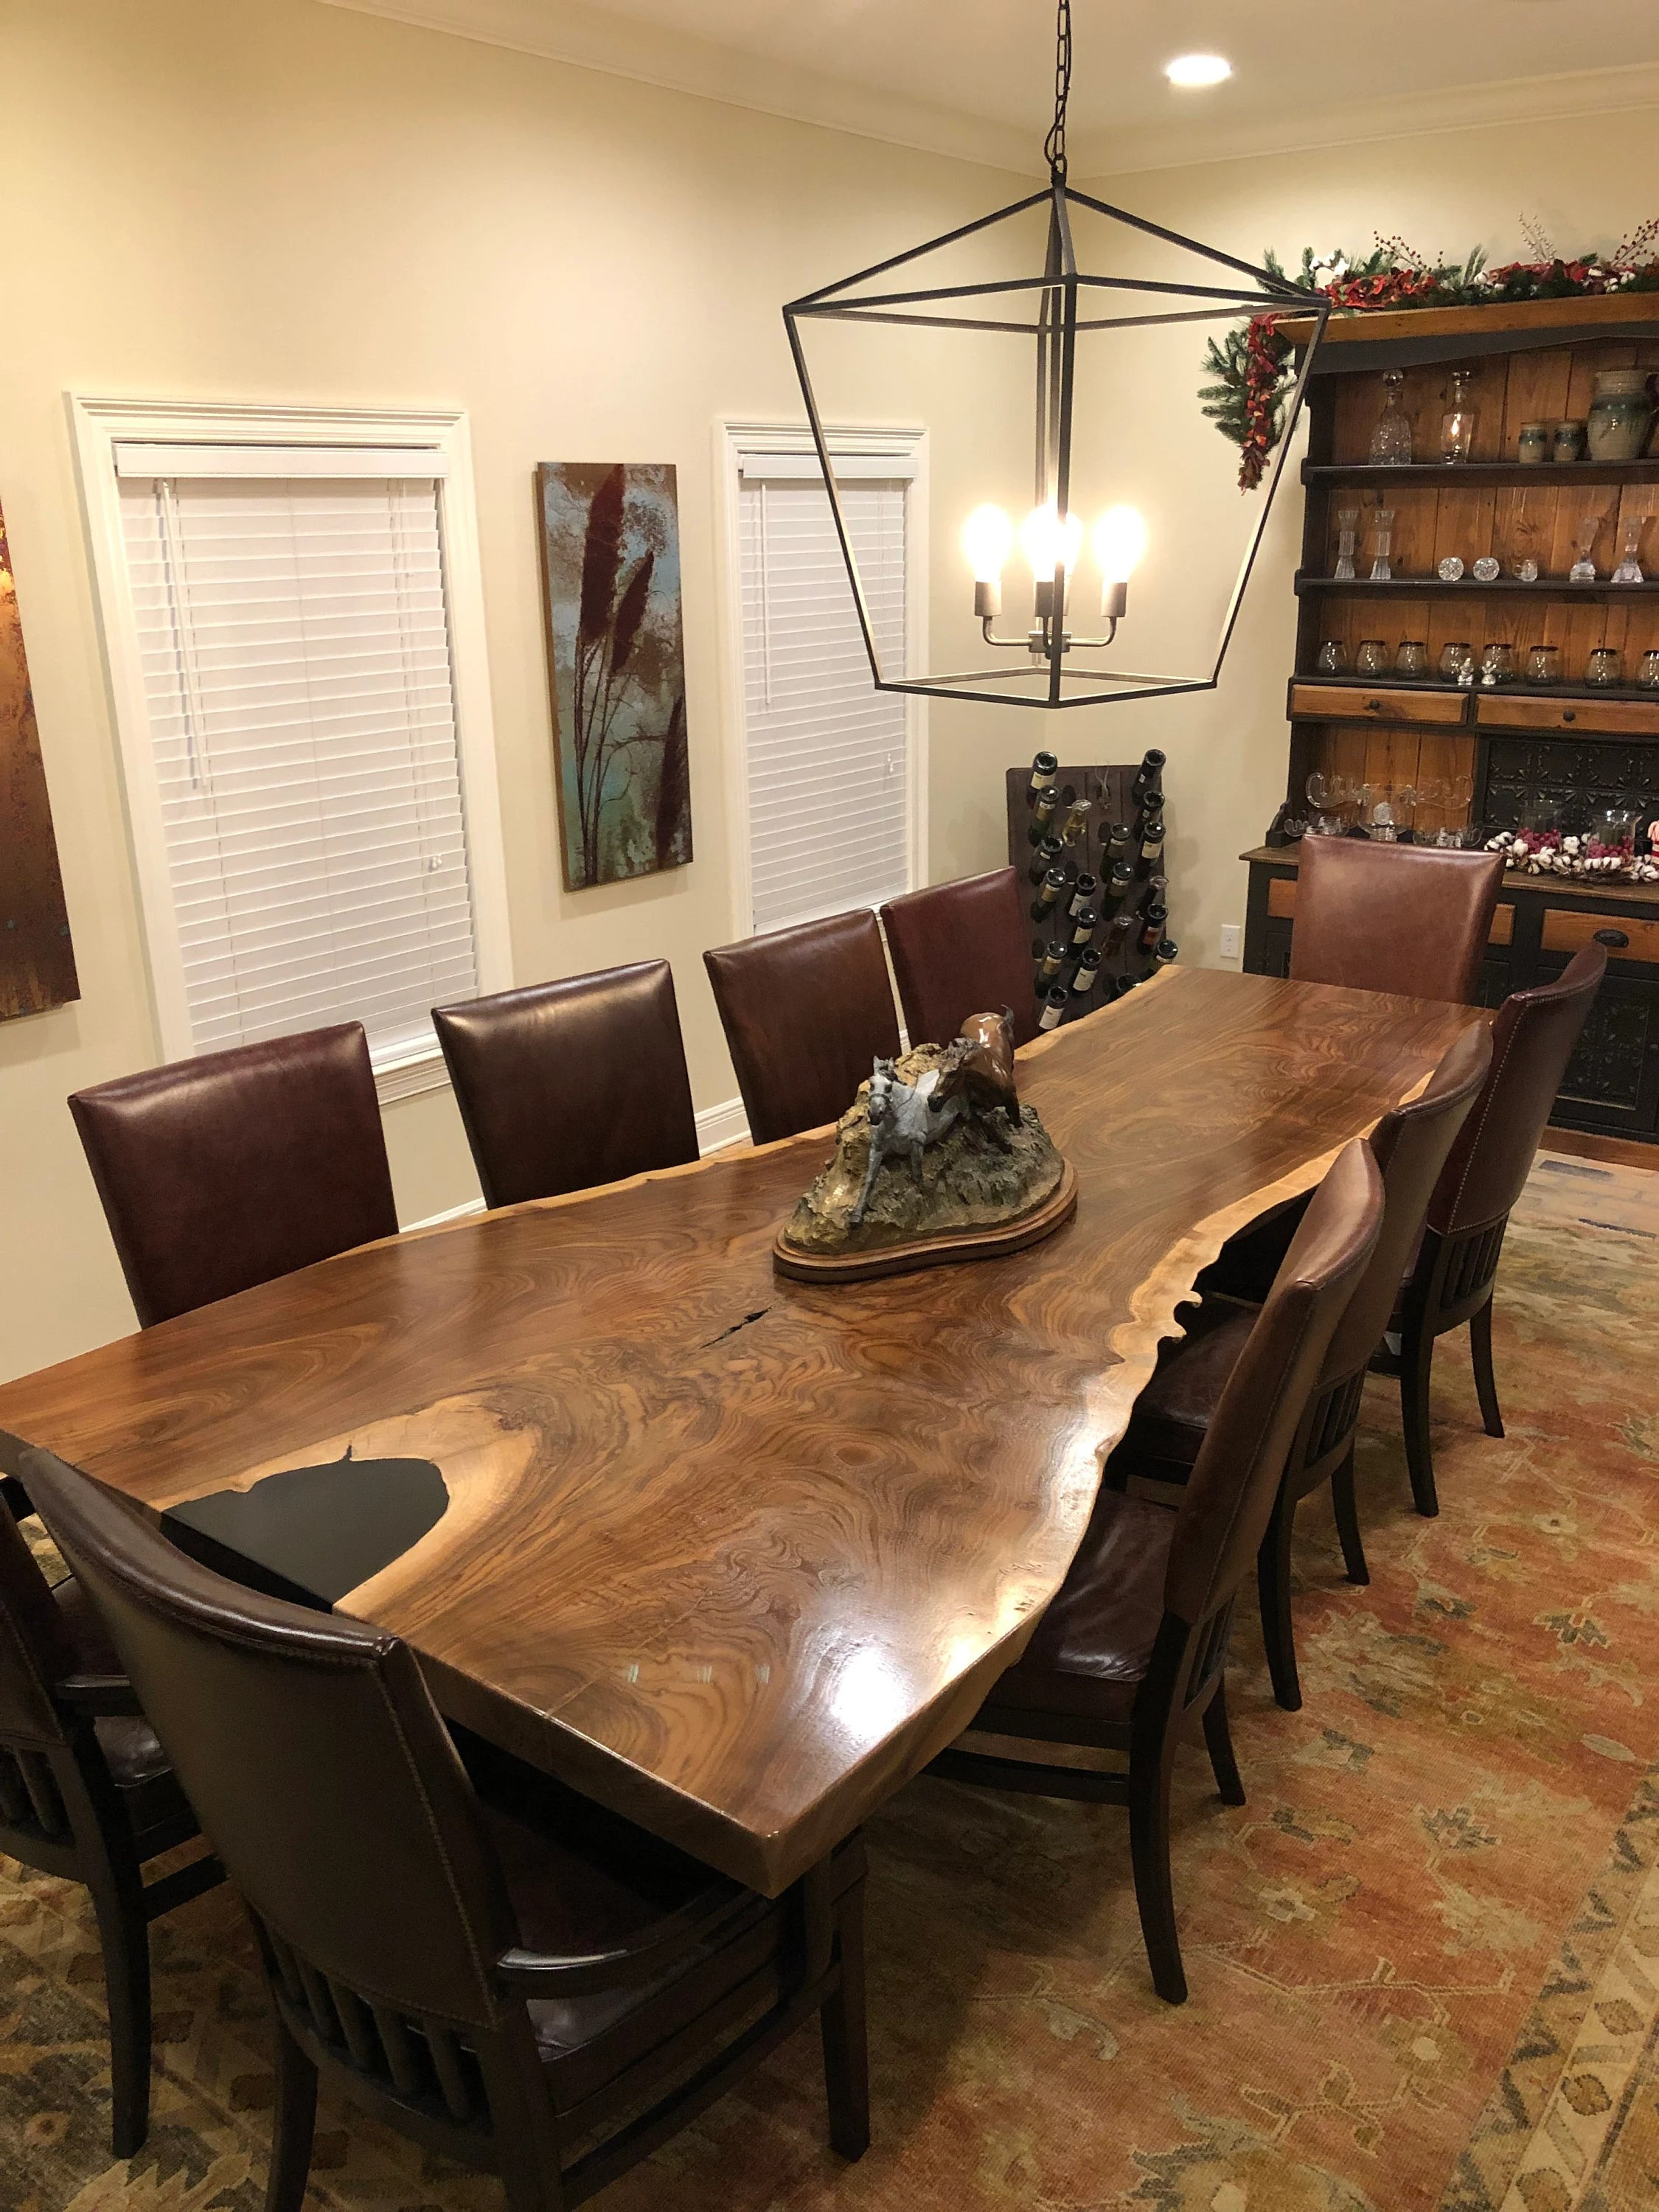 live edge conference table live edge table wood slab table live edge slab conference table wood slab table wood conference table